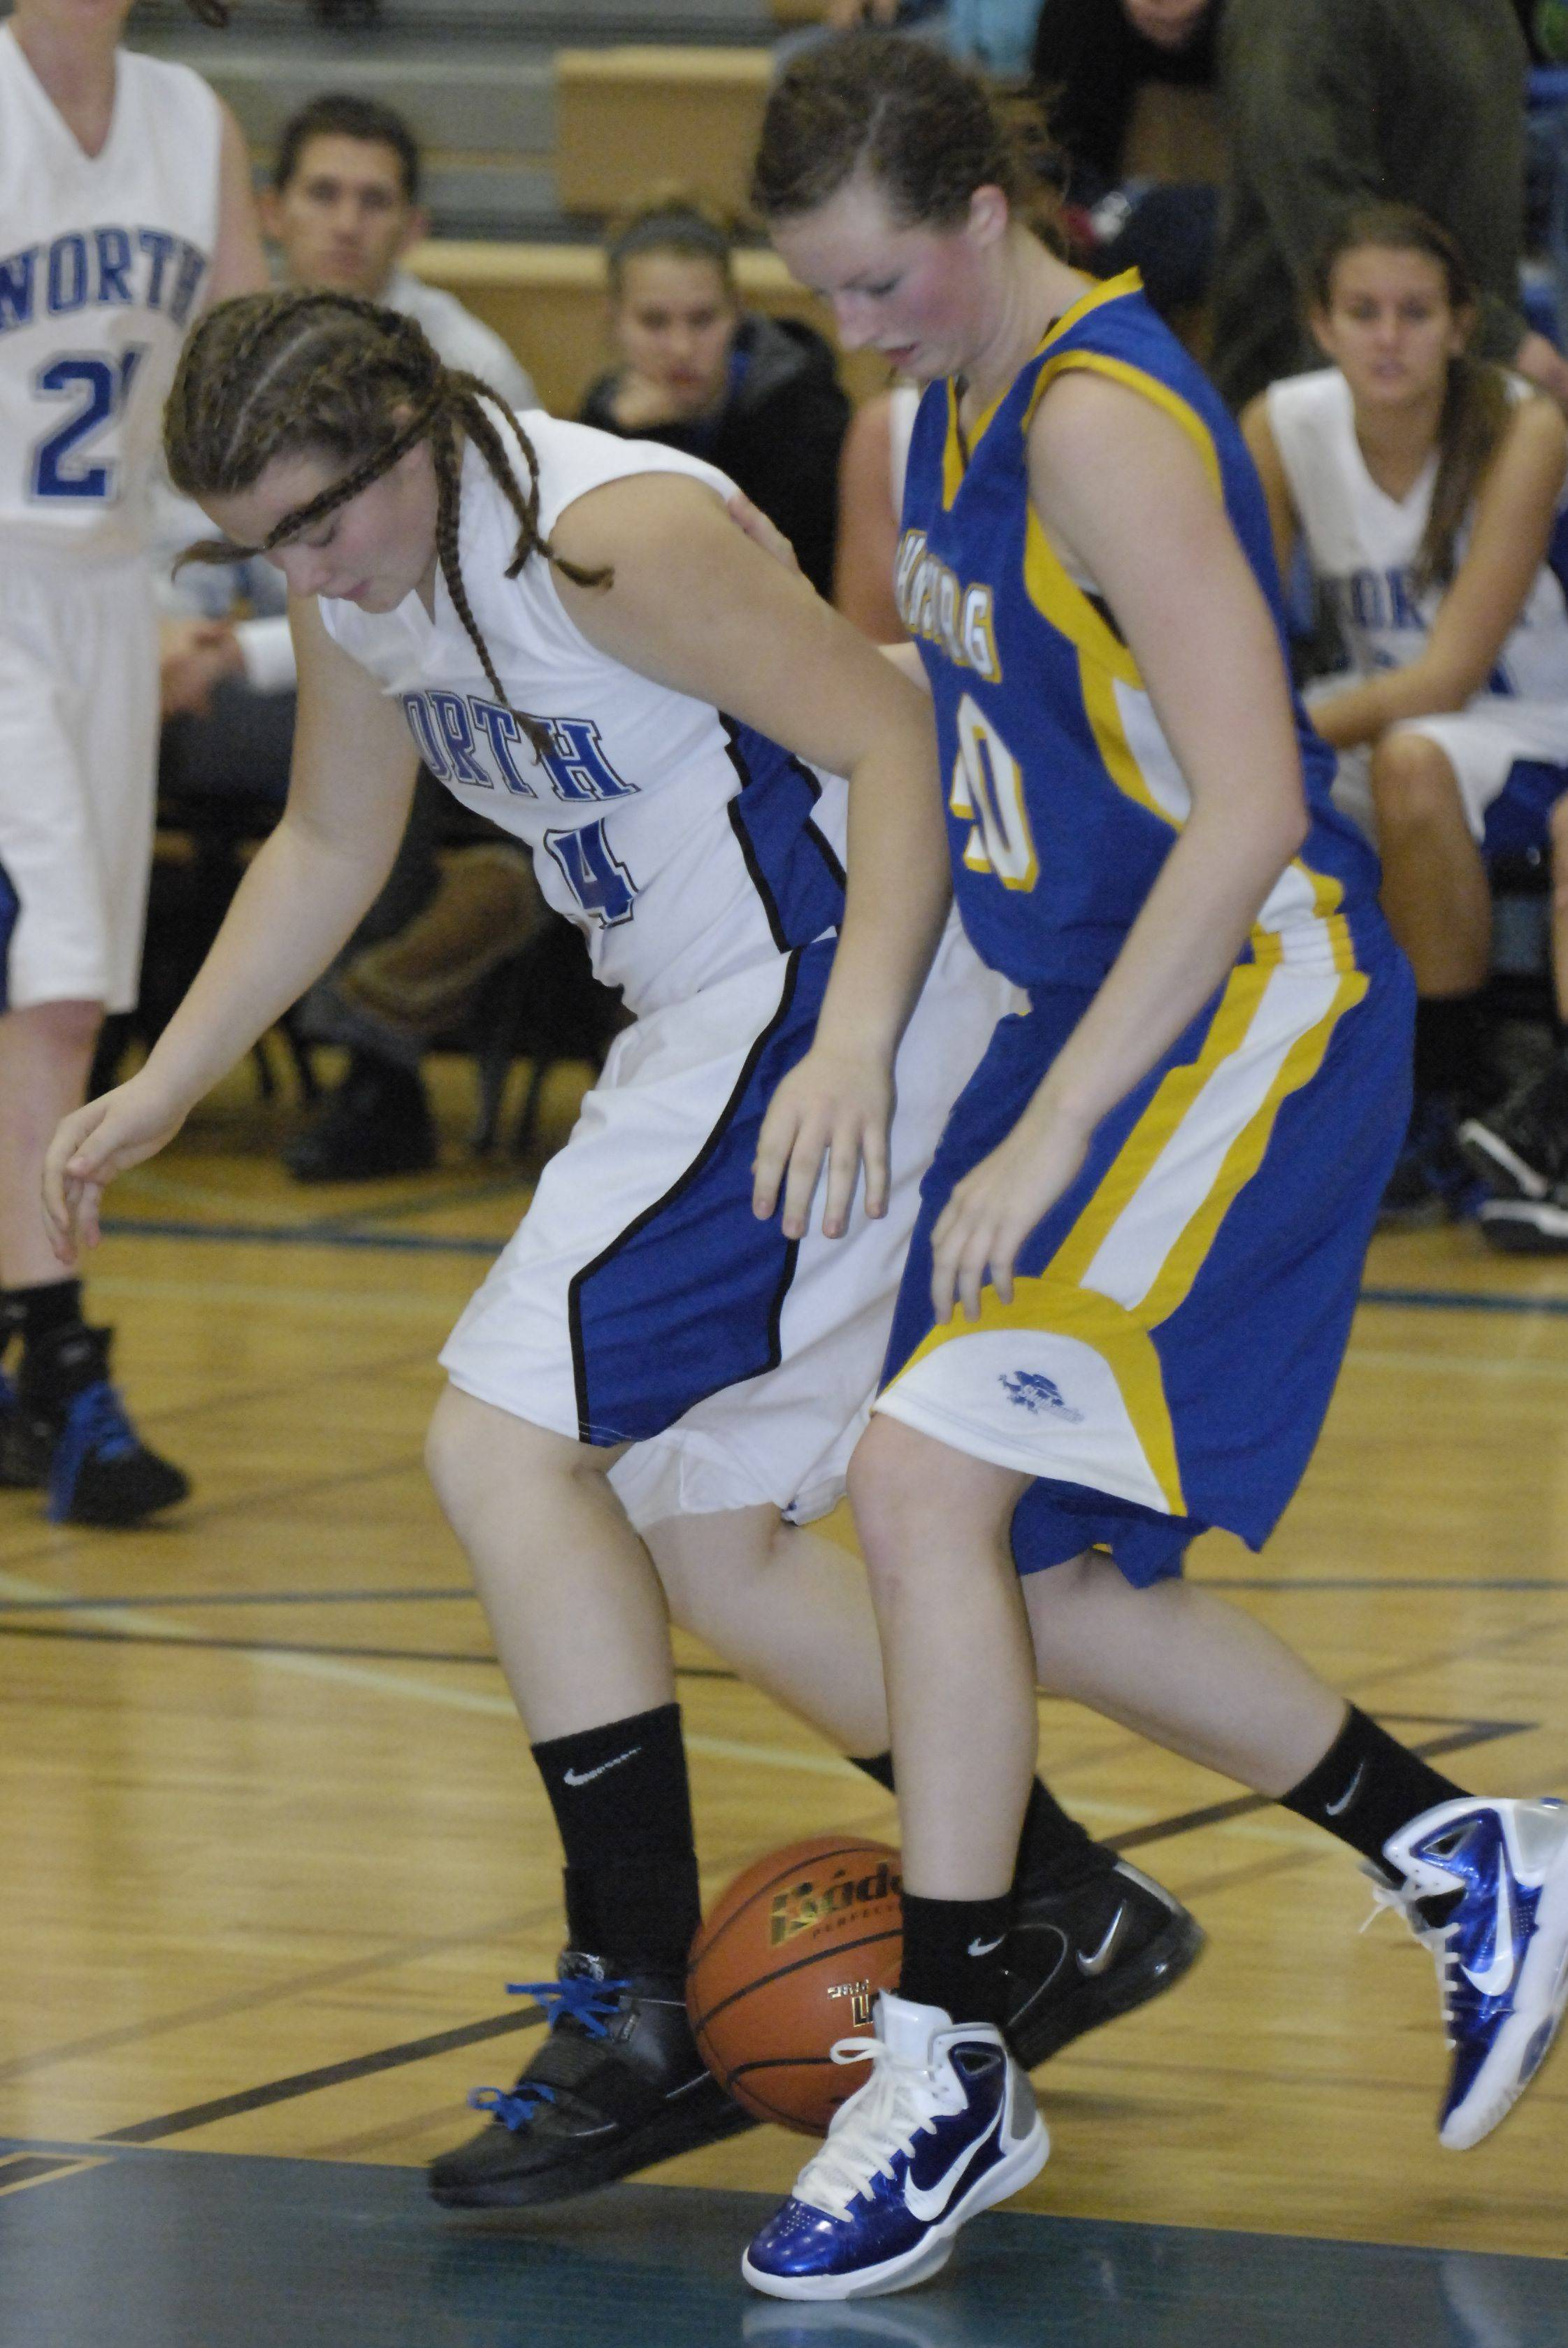 Images from the Johnsburg vs. St. Charles North girls basketball game Tuesday, December 21, 2010.